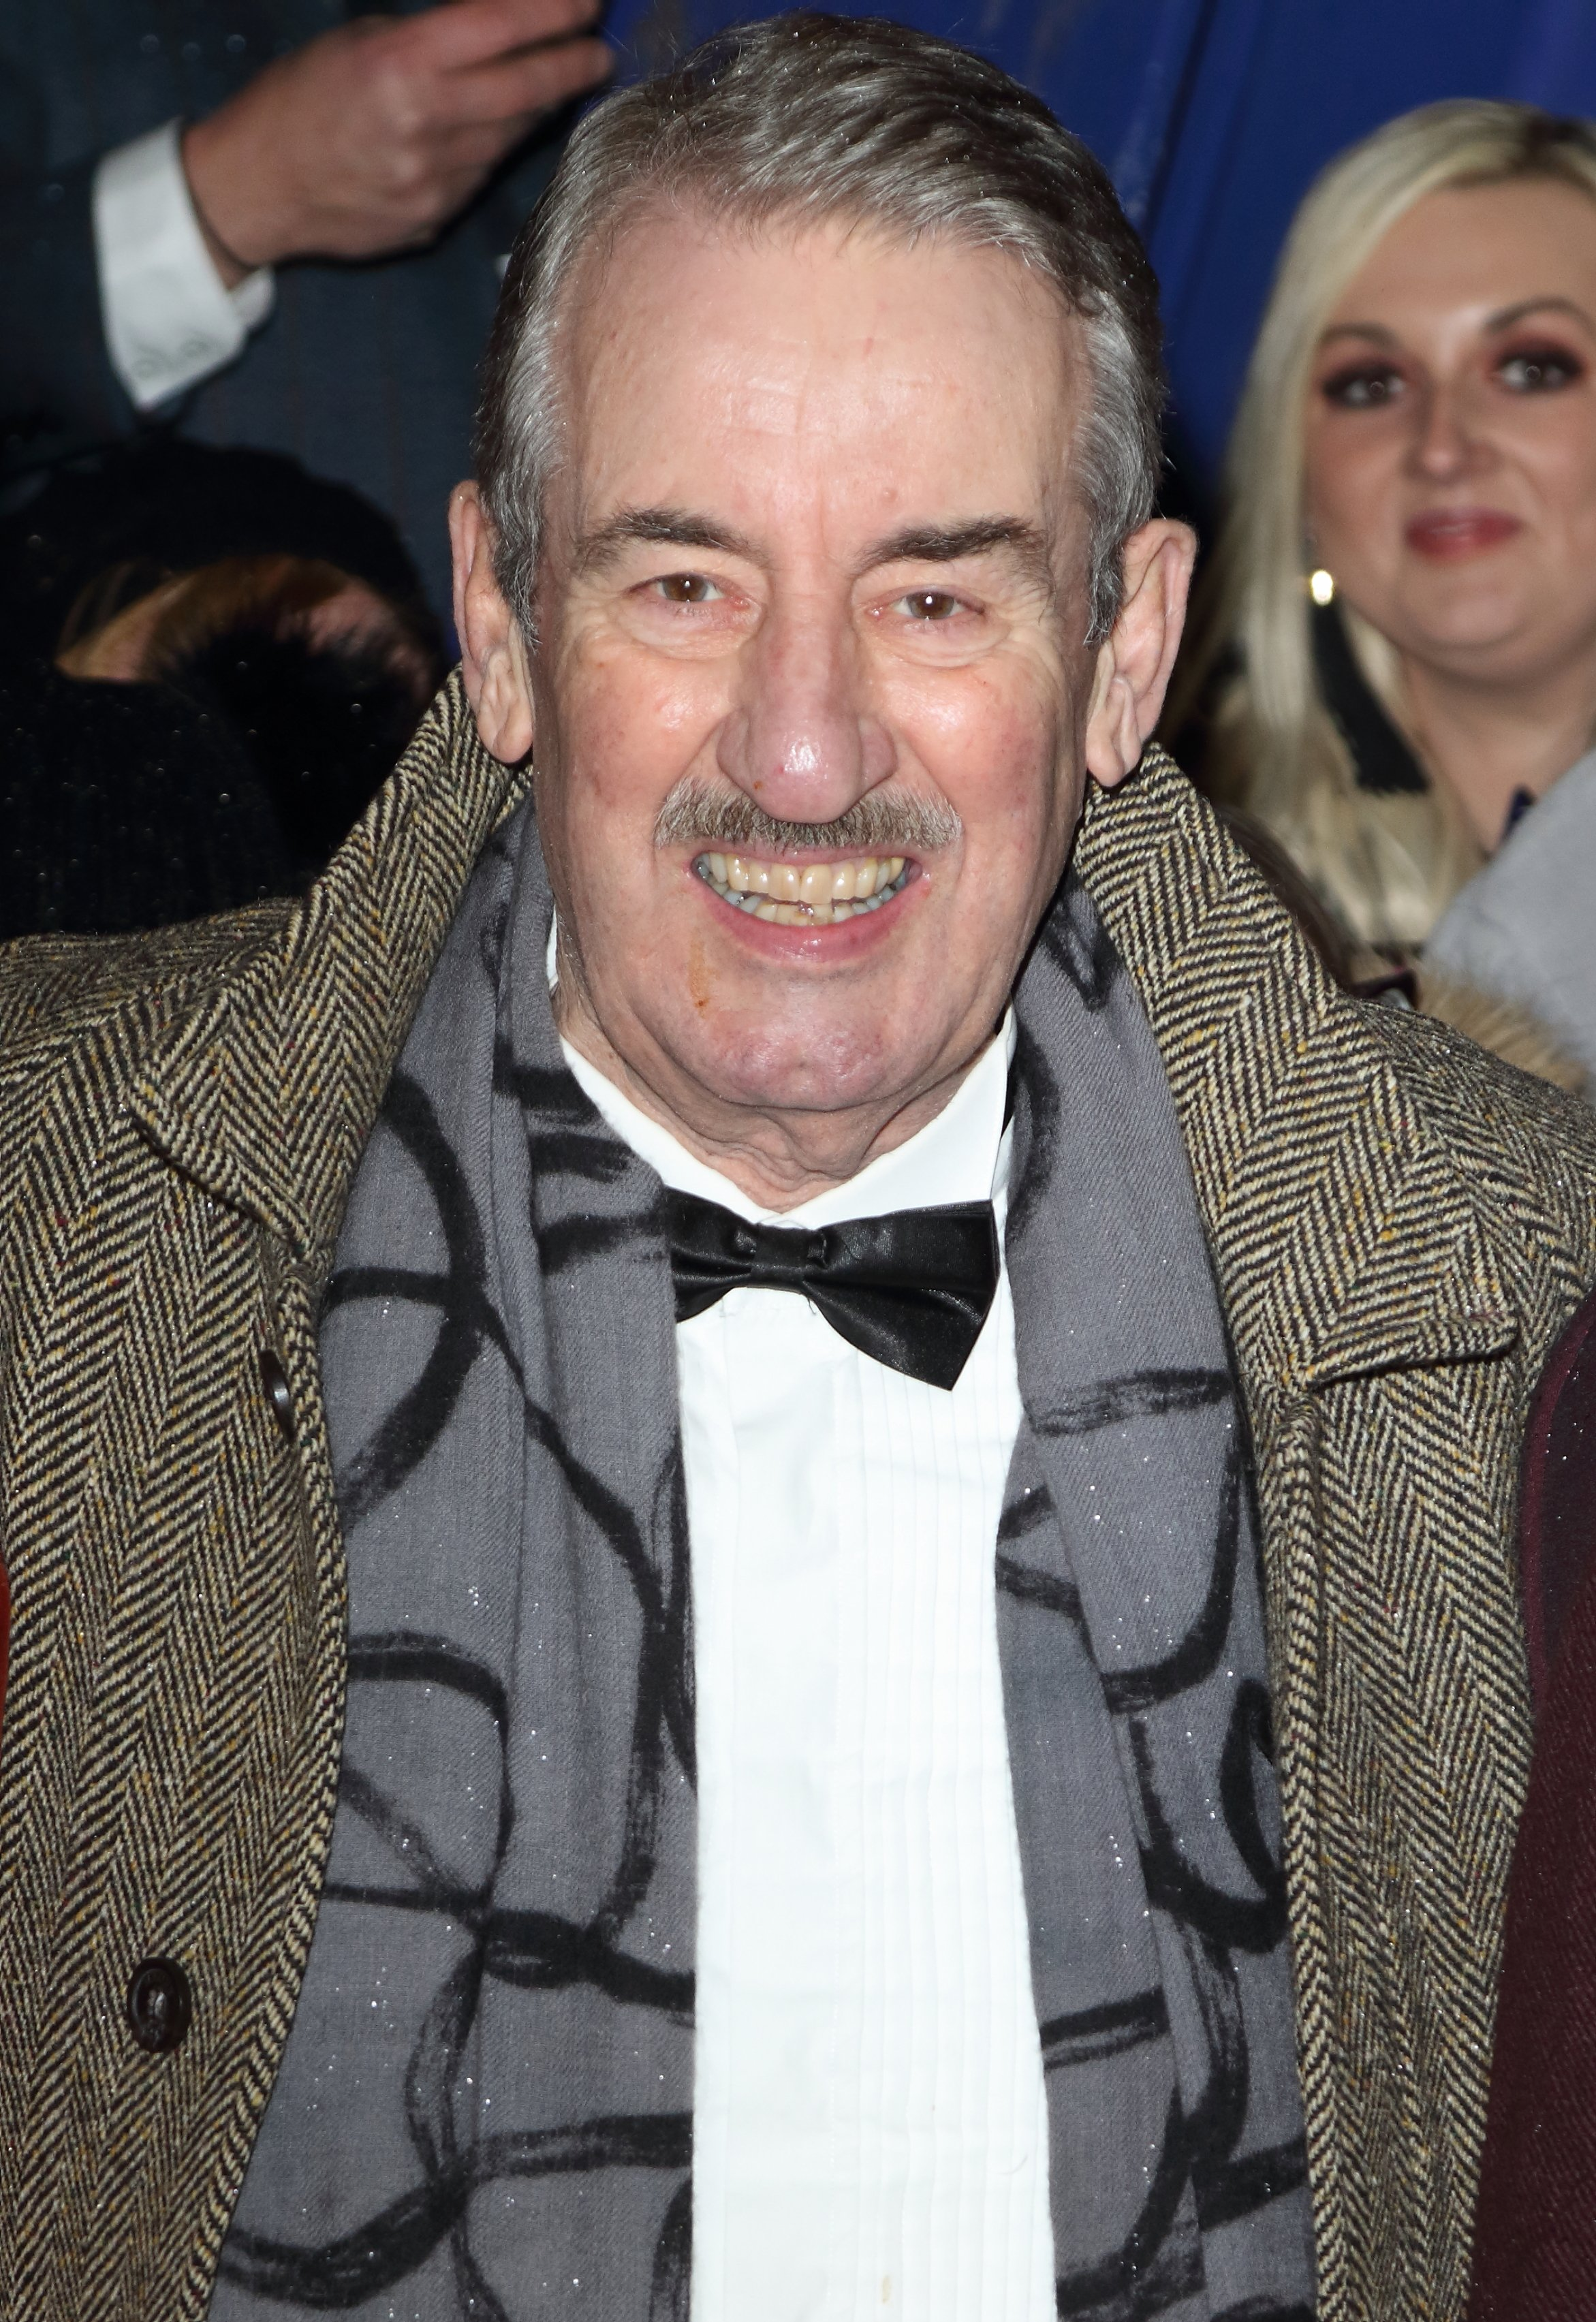 John Challis pictured on the red carpet during the National Television Awards, 2019, United Kingdom.   Photo: Getty Images